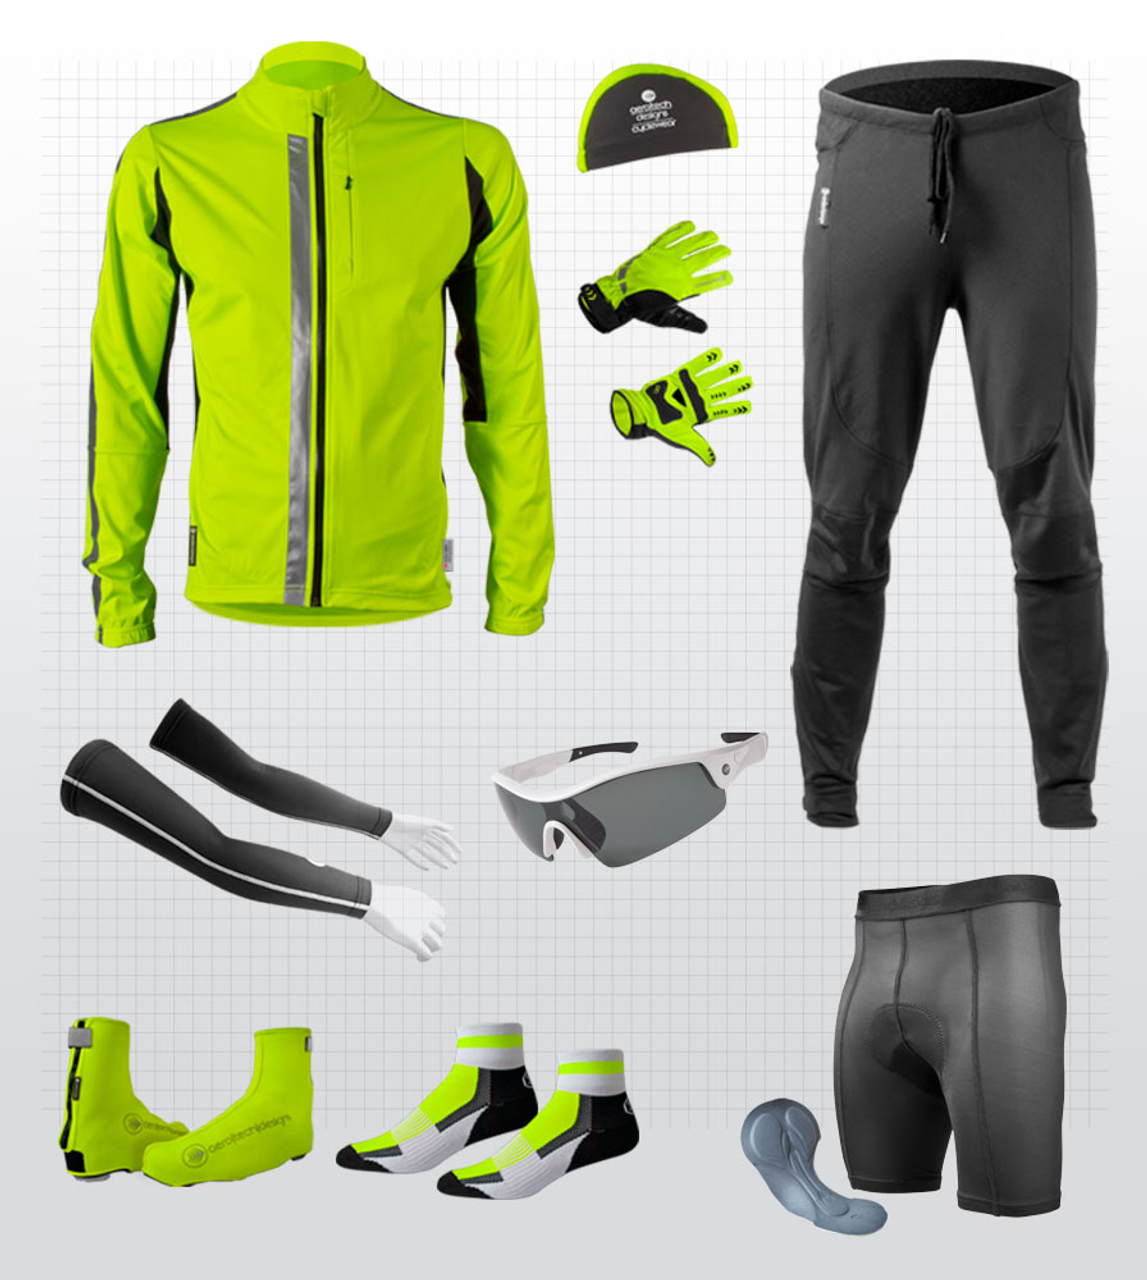 https://cdn7.bigcommerce.com/s-cmcj94sbu5/images/stencil/1280x1280/products/2488/13909/ATD_ColdWeather_CyclingPant_Group__34851.1513350049.png?c=2&imbypass=on